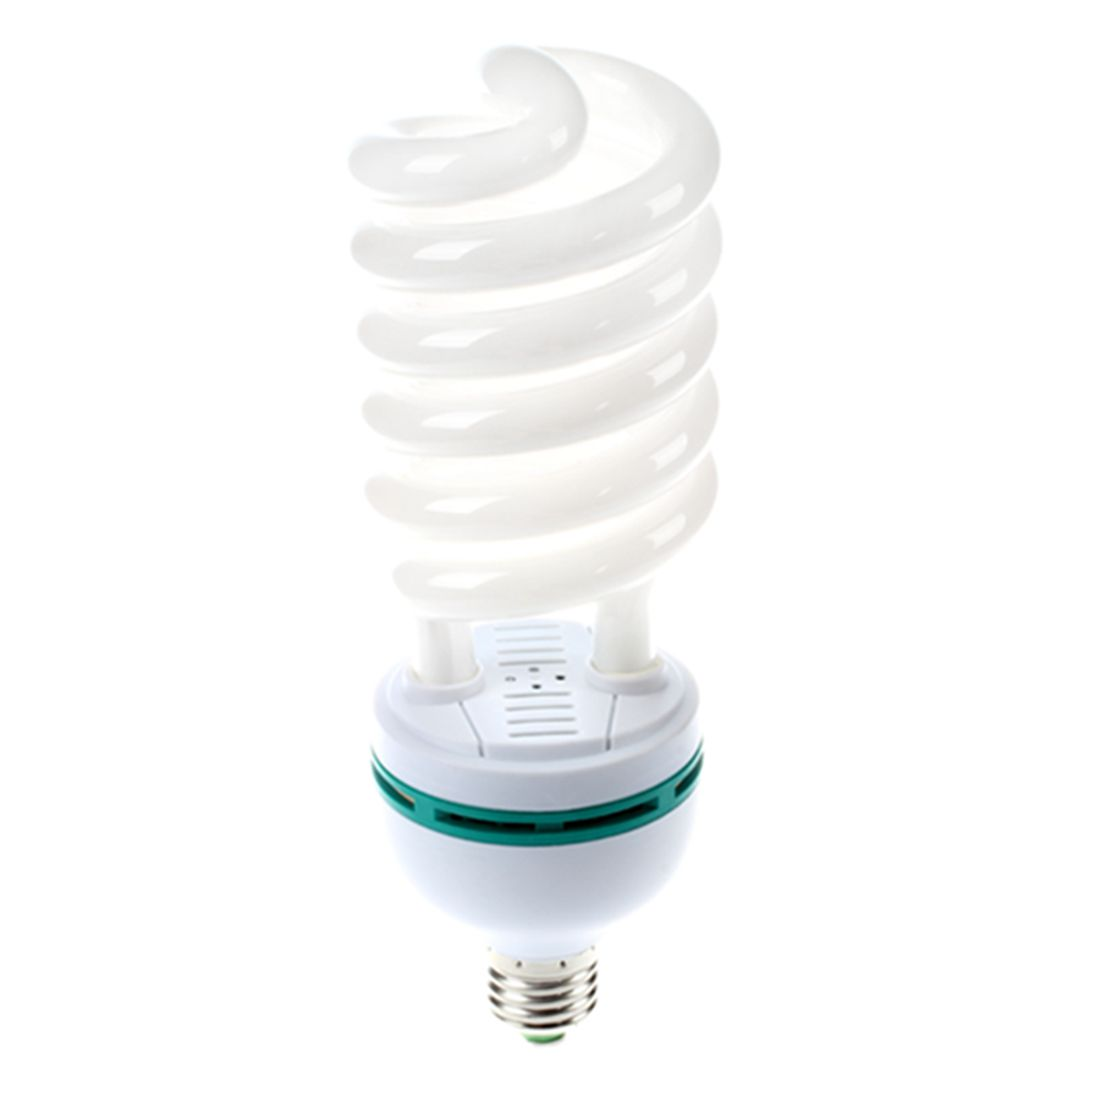 105W (525W Equiv) 5500K Photography Daylight E27 Fitting CFL Bulb 1pc 150w 220v 5500k e27 photo studio bulb video light photography daylight lamp for digital camera photography